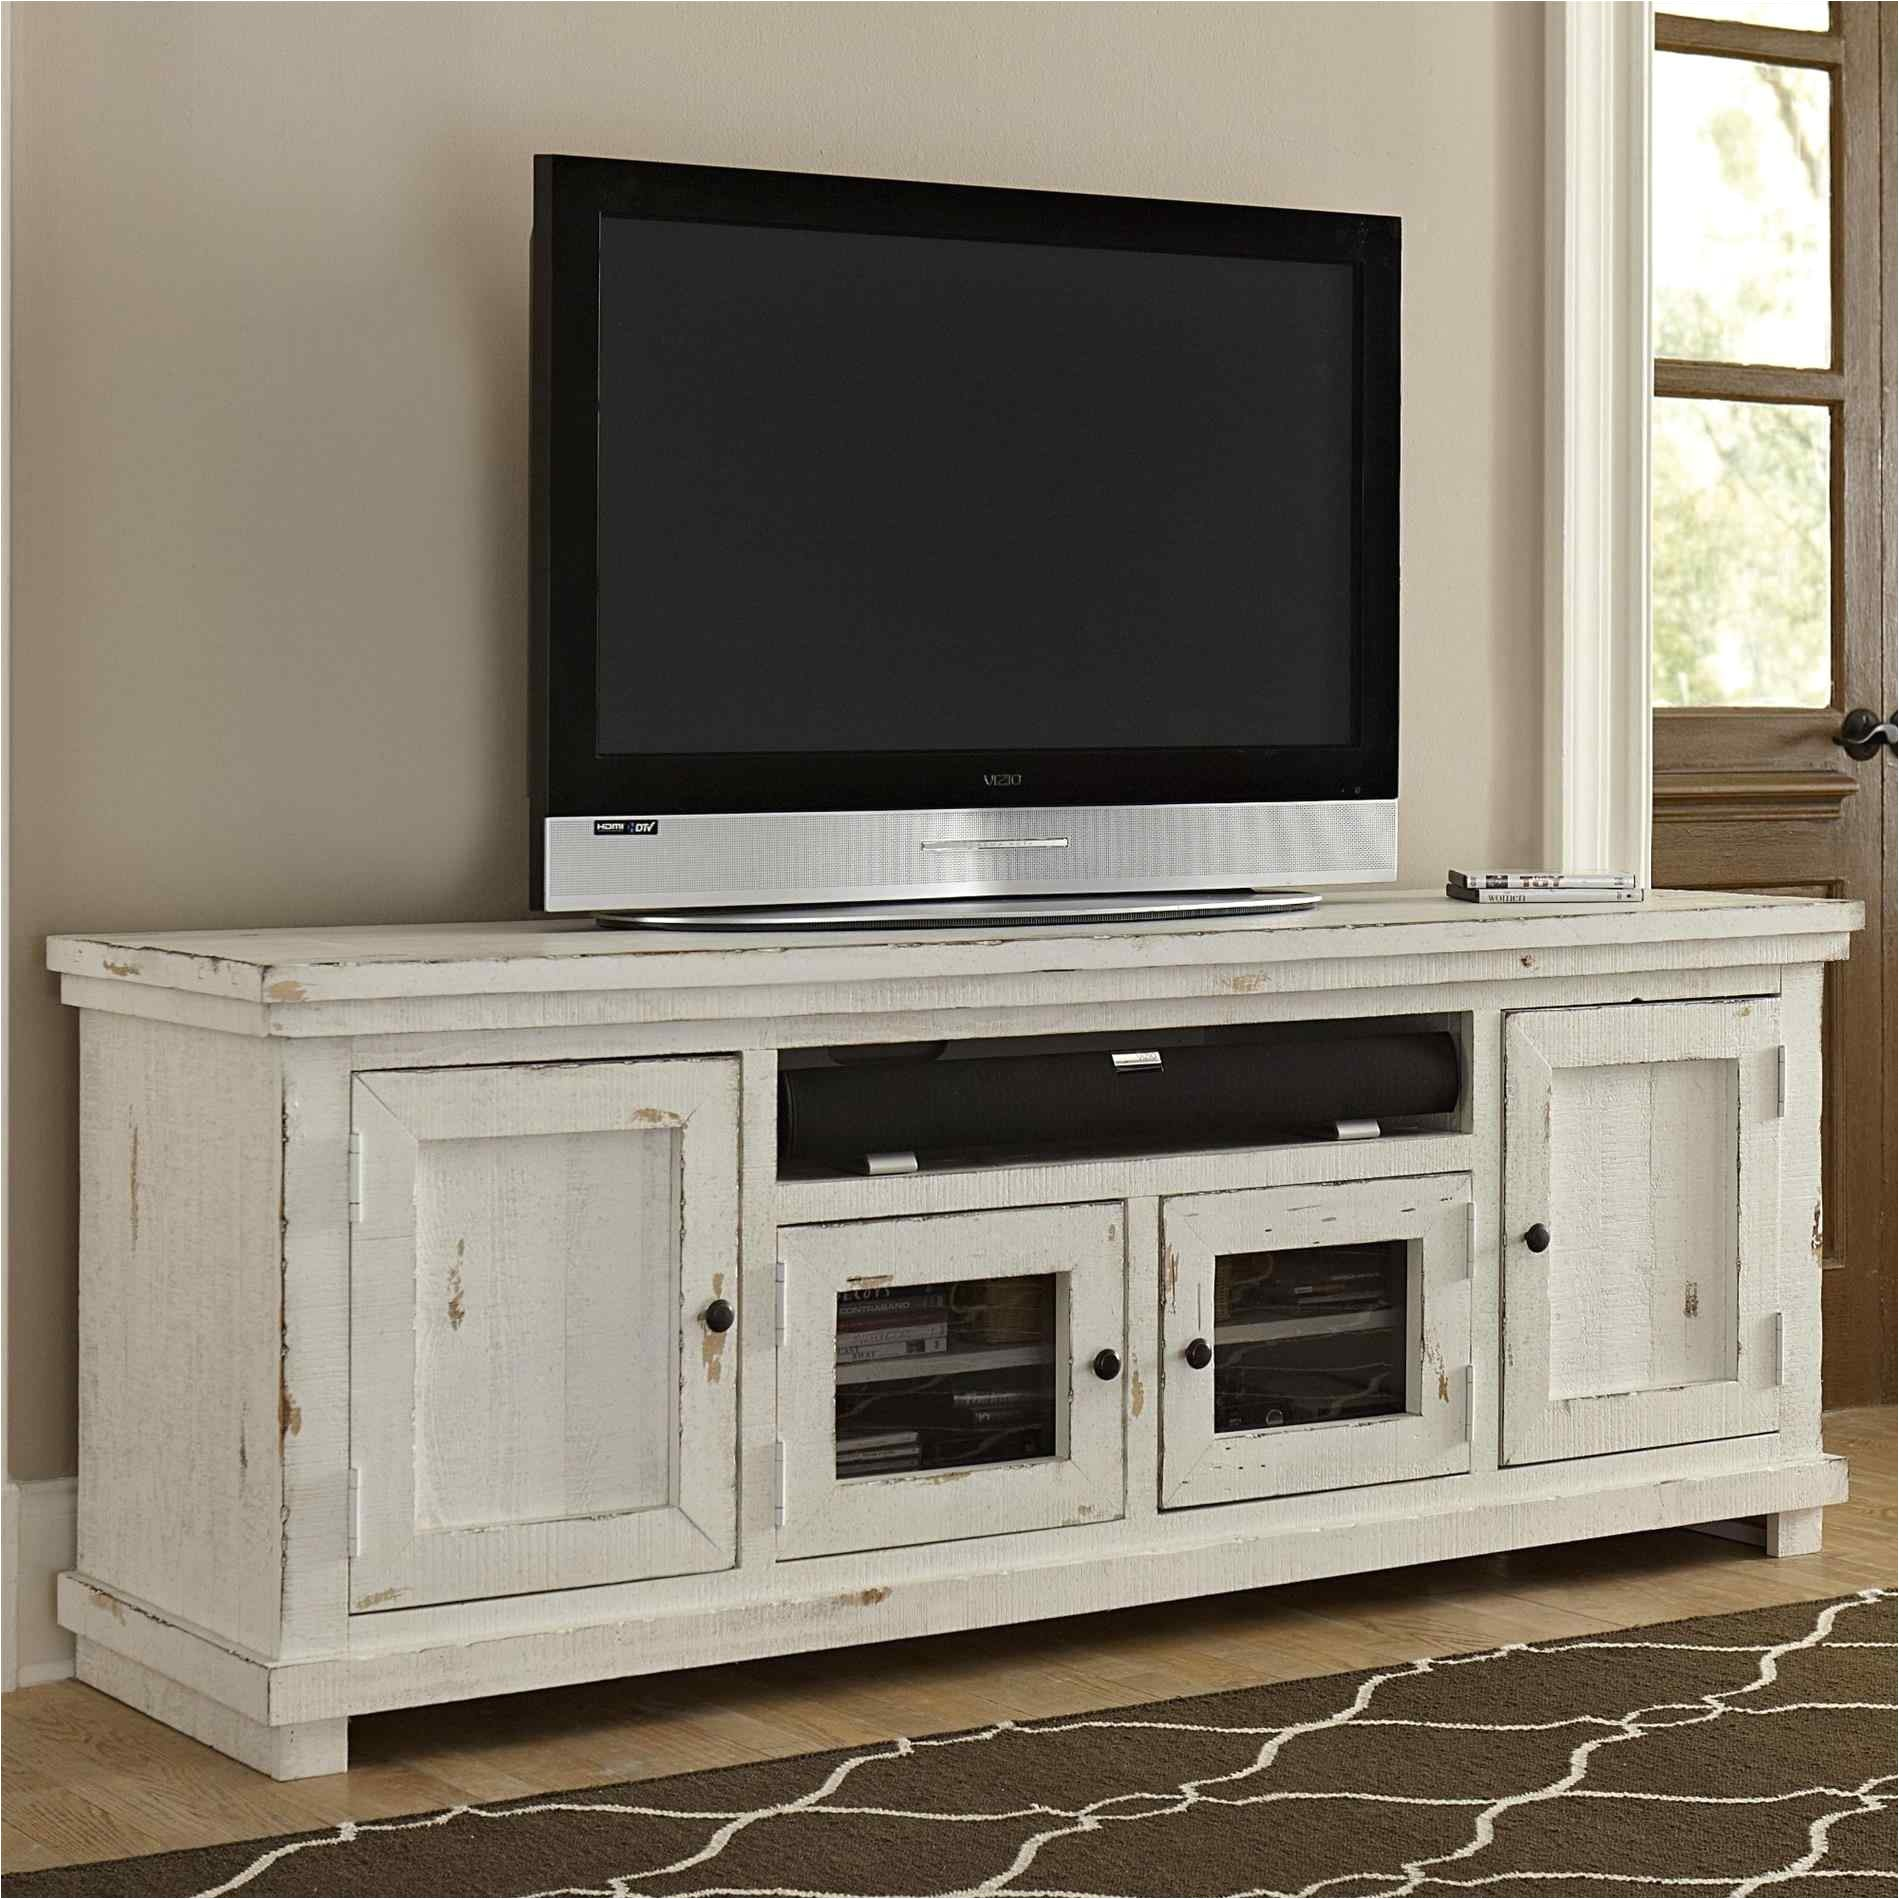 American Furniture Warehouse Entertainment Center American Furniture Tv Stands Black Large Tv Stand with